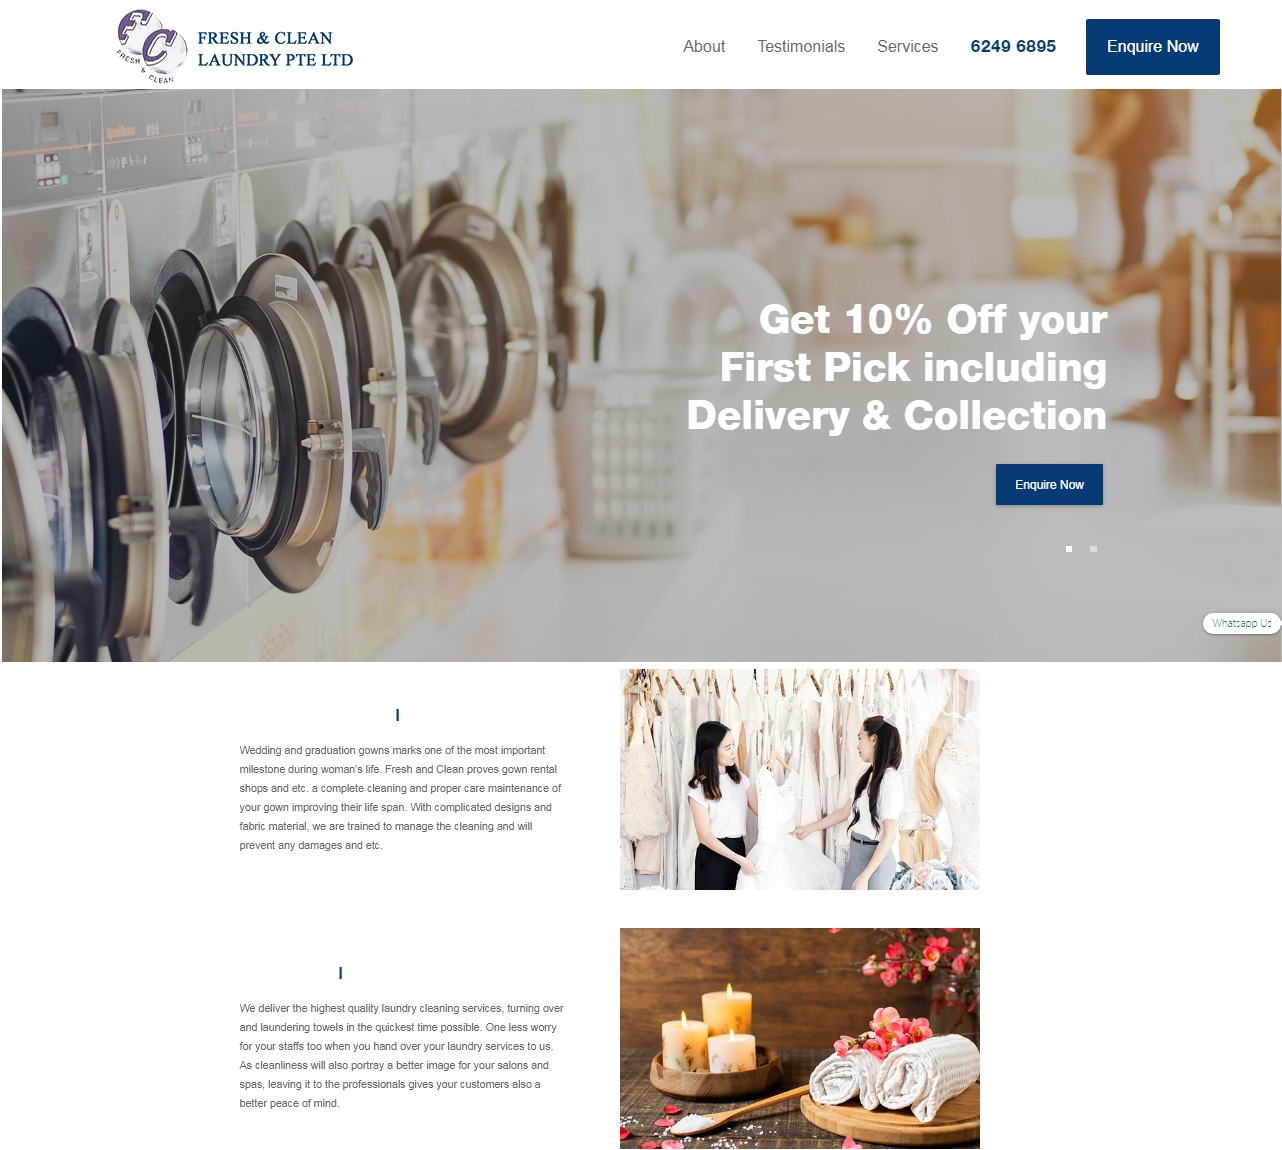 Fresh & Clean Laundry Services' Website